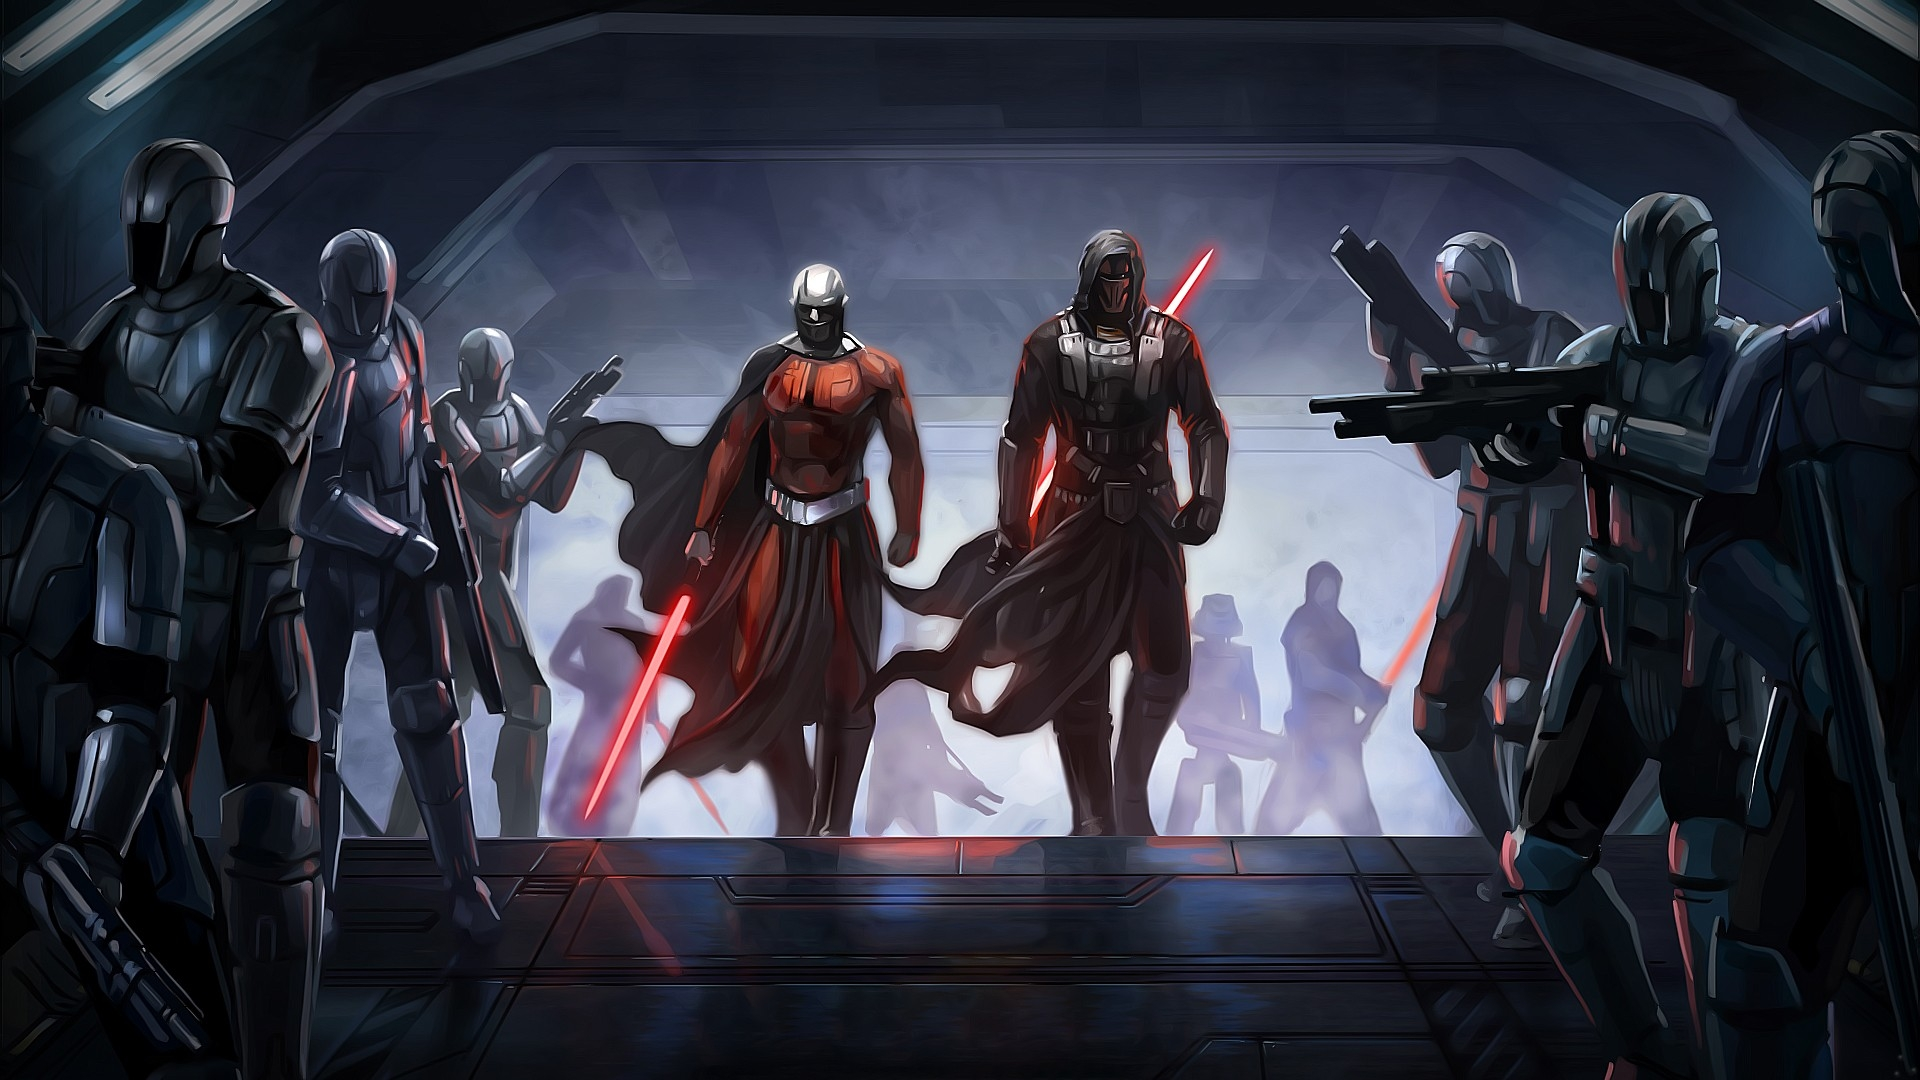 Star Wars Character Wallpapers